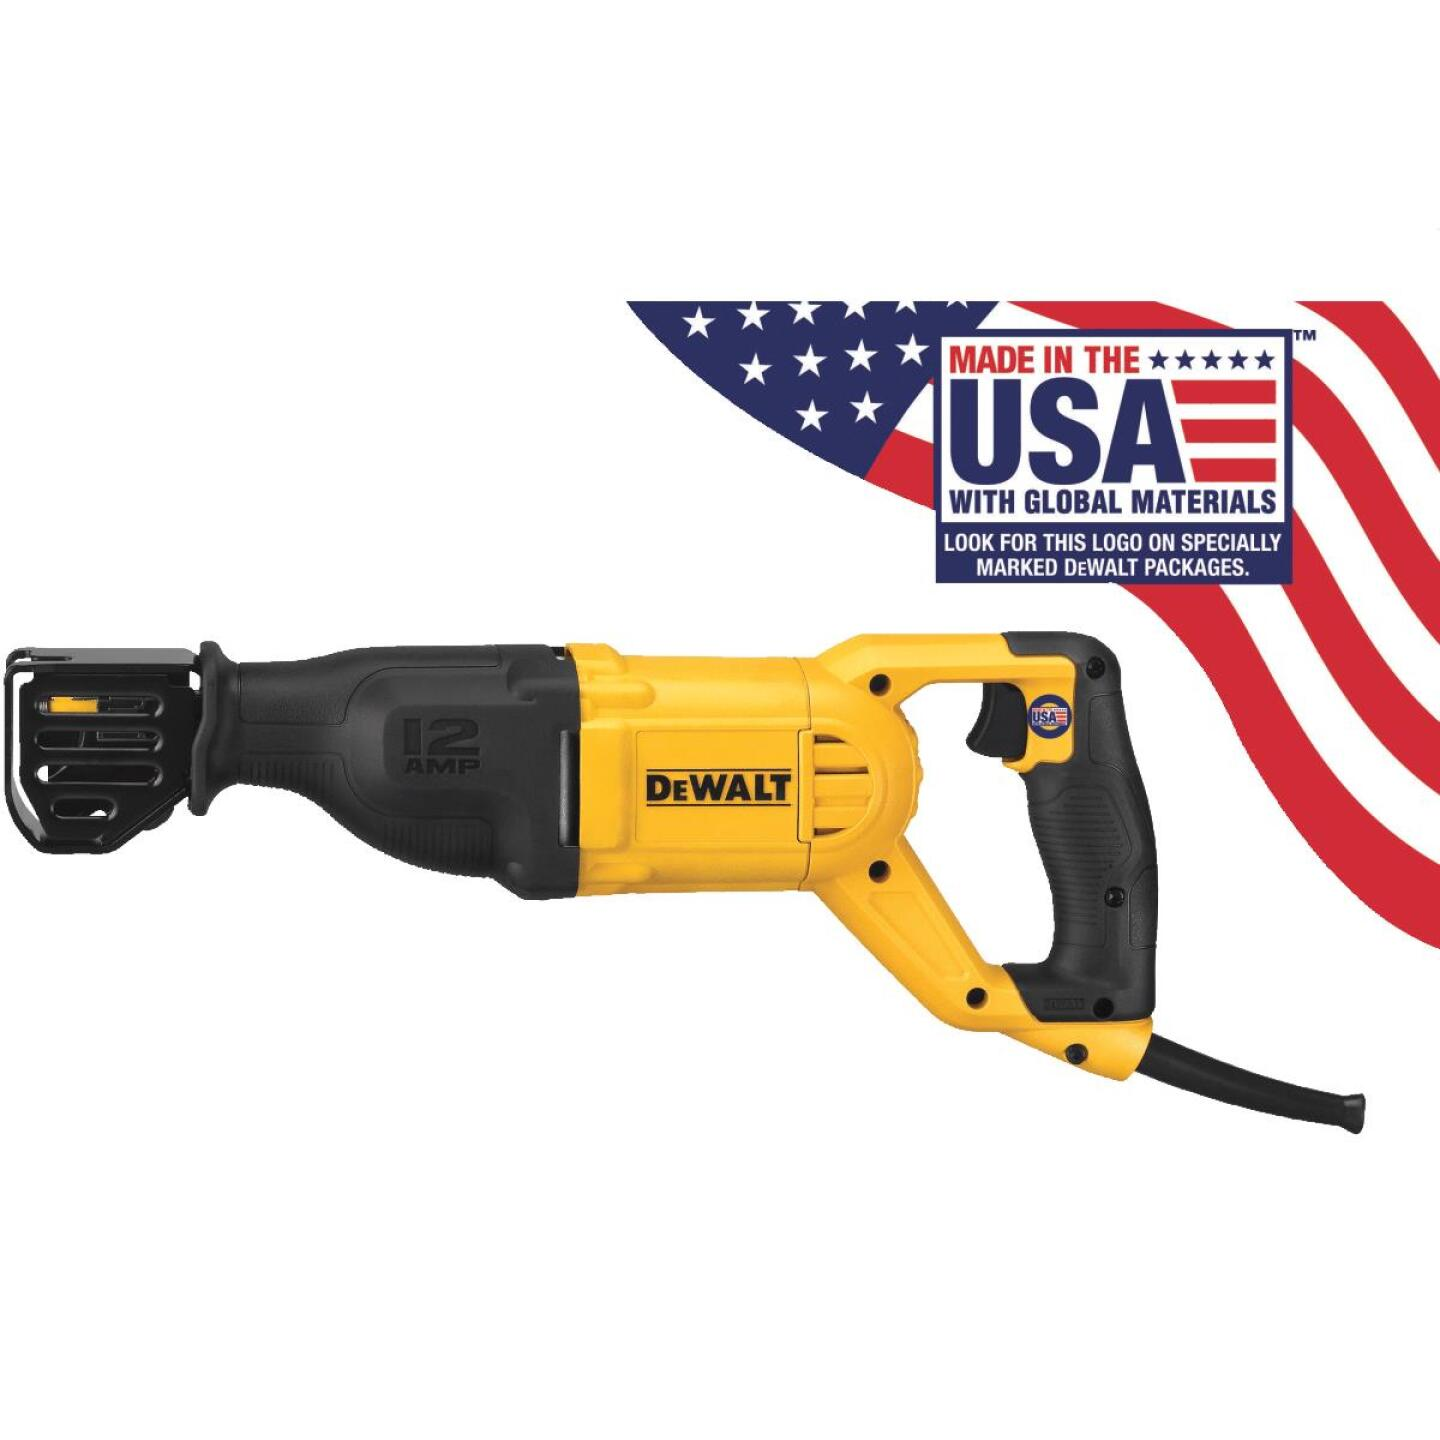 DeWalt 12-Amp Reciprocating Saw Image 1